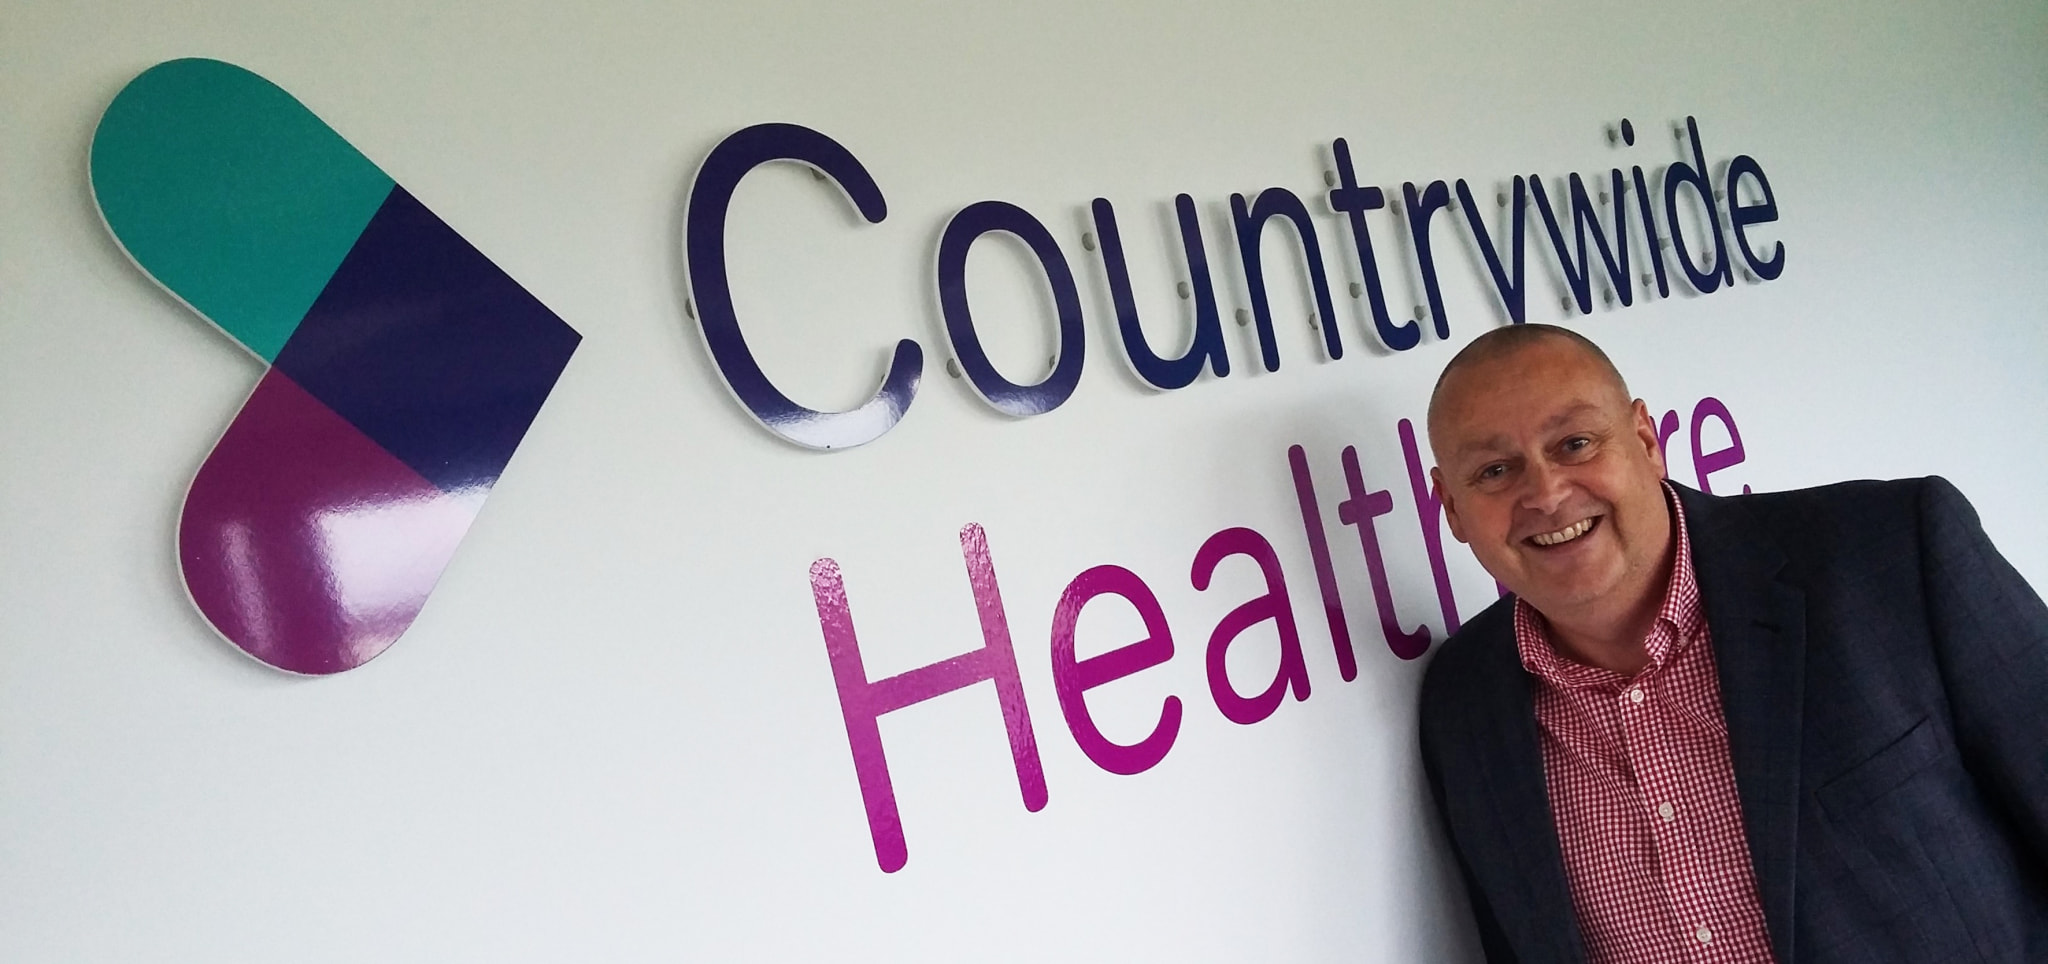 Alastair Kitching Managing Director Countrywide Healthcare